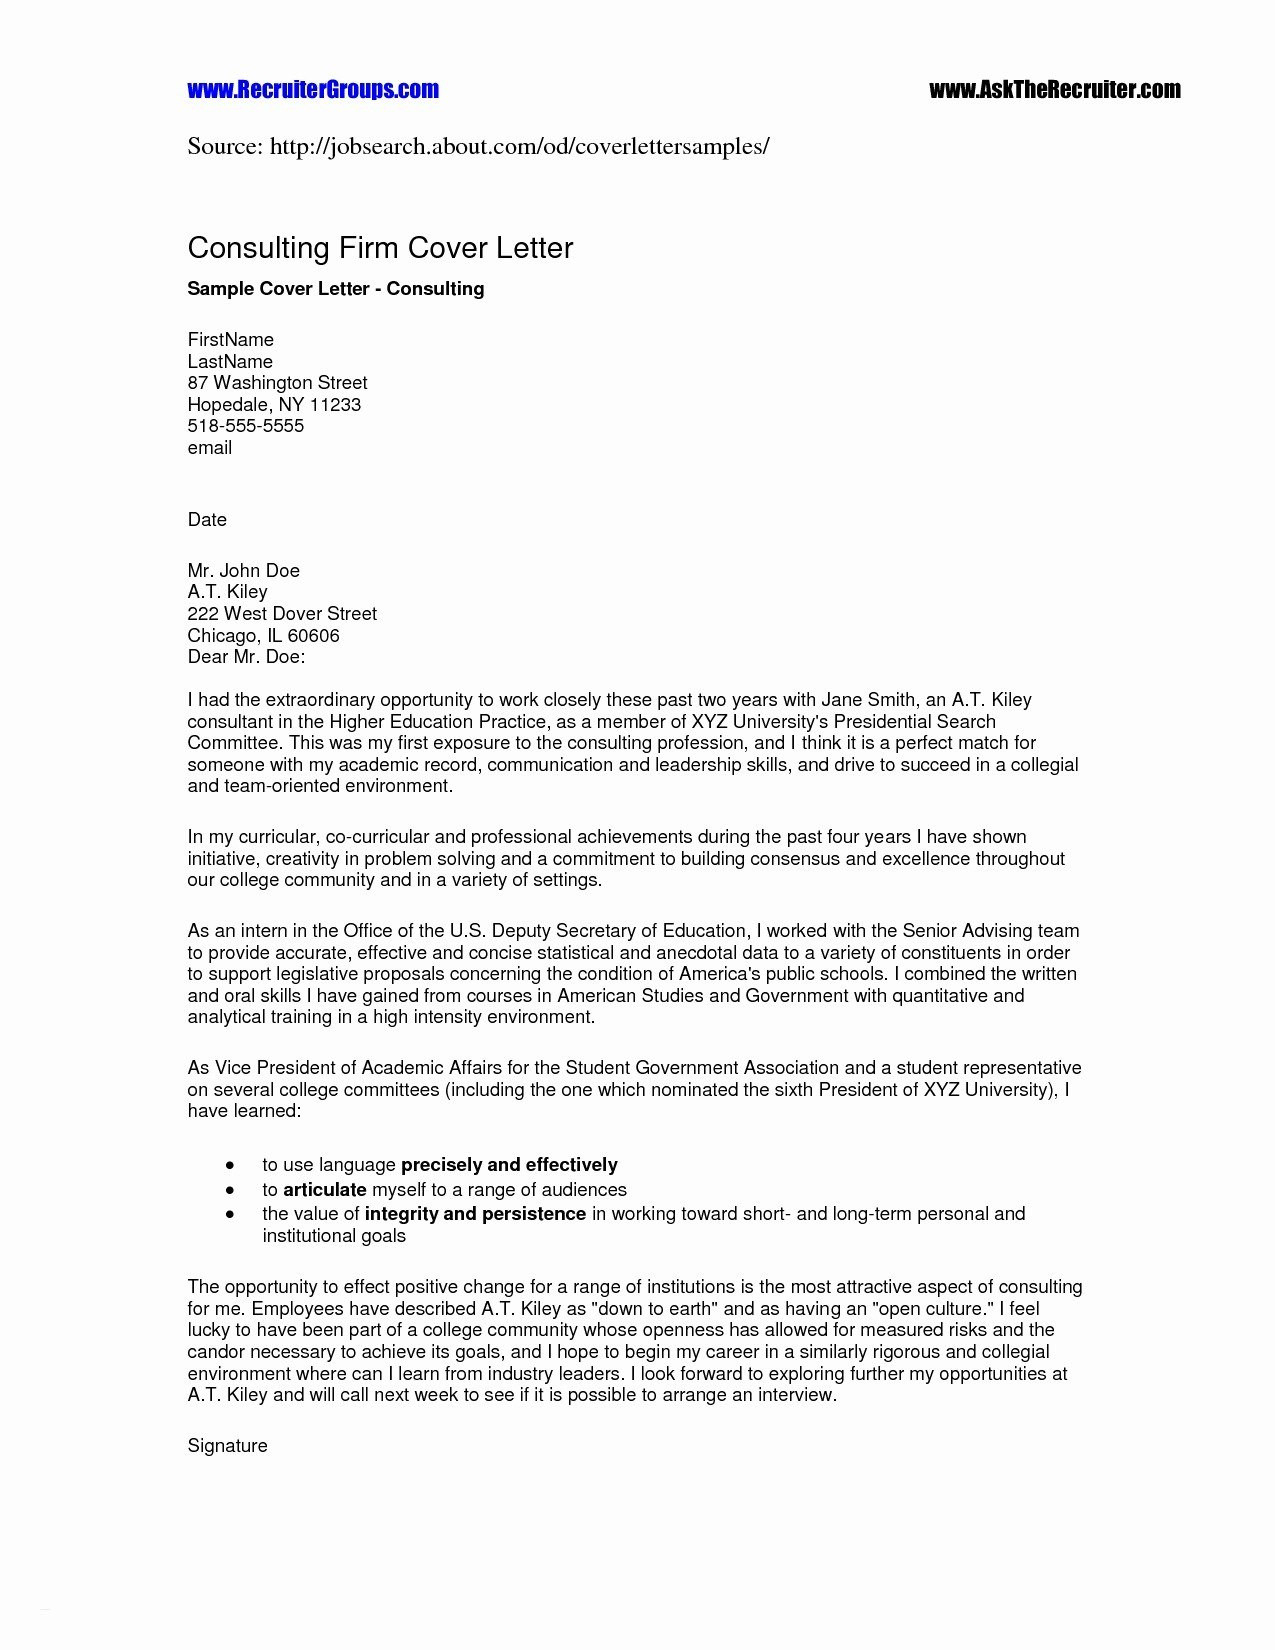 College Application Resume Template Free - Resume Templates for College Applications Reference College